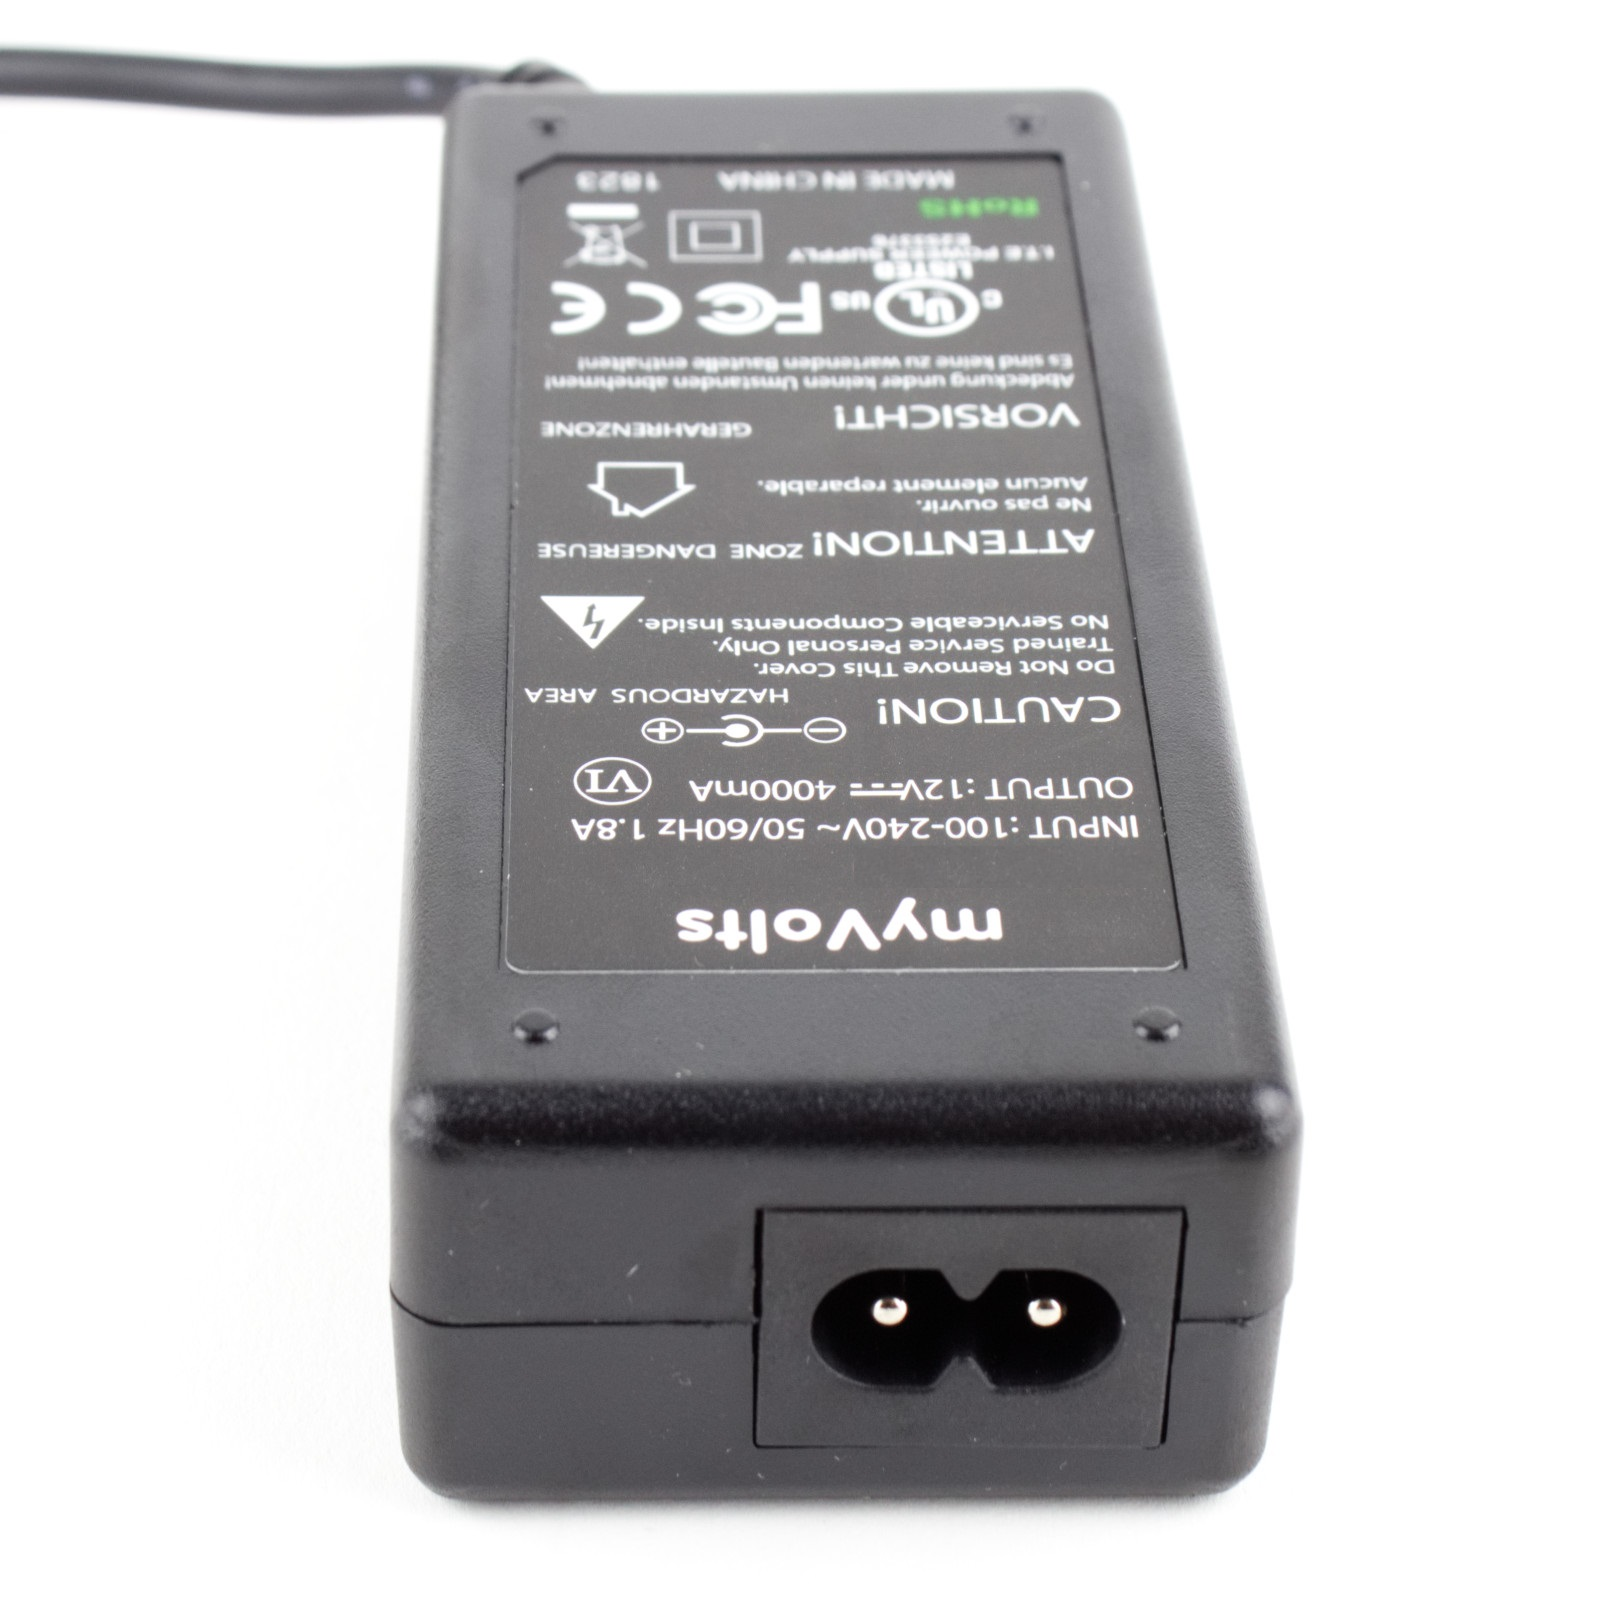 US Plug MyVolts 12V Power Supply Adaptor Compatible with Western Digital WD10000D033-01 External Hard Drive